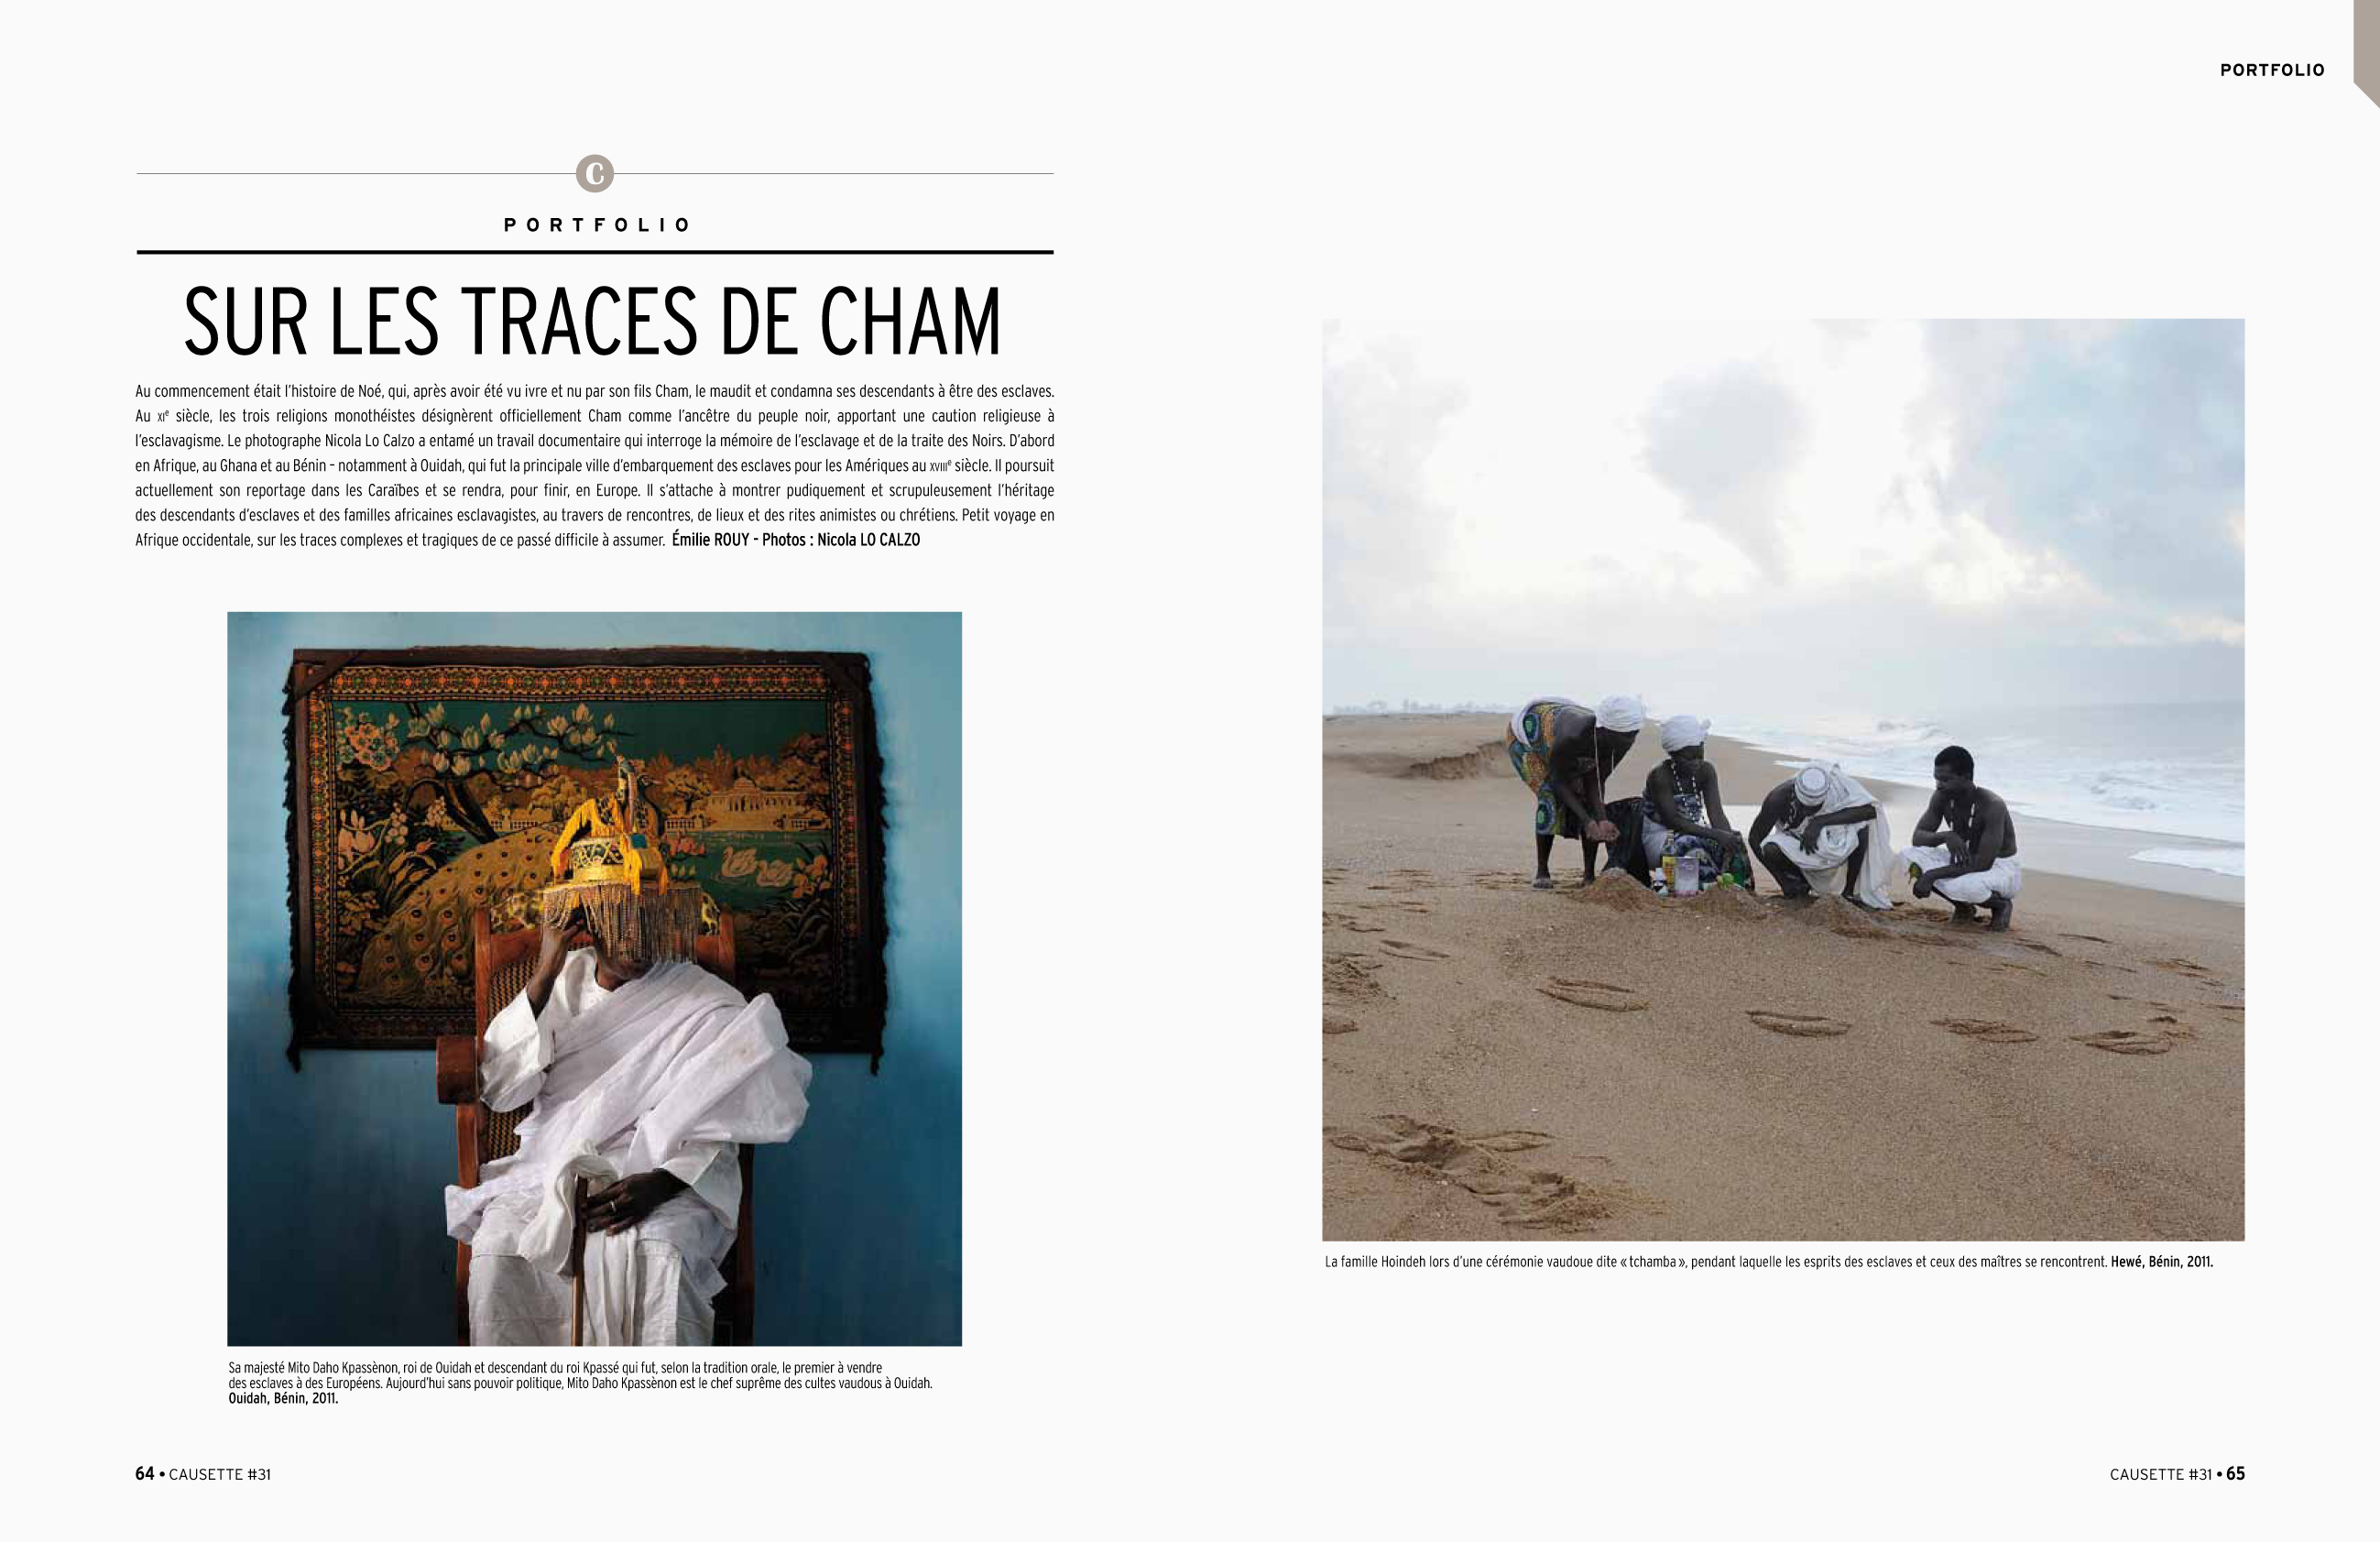 Cham published in Causette